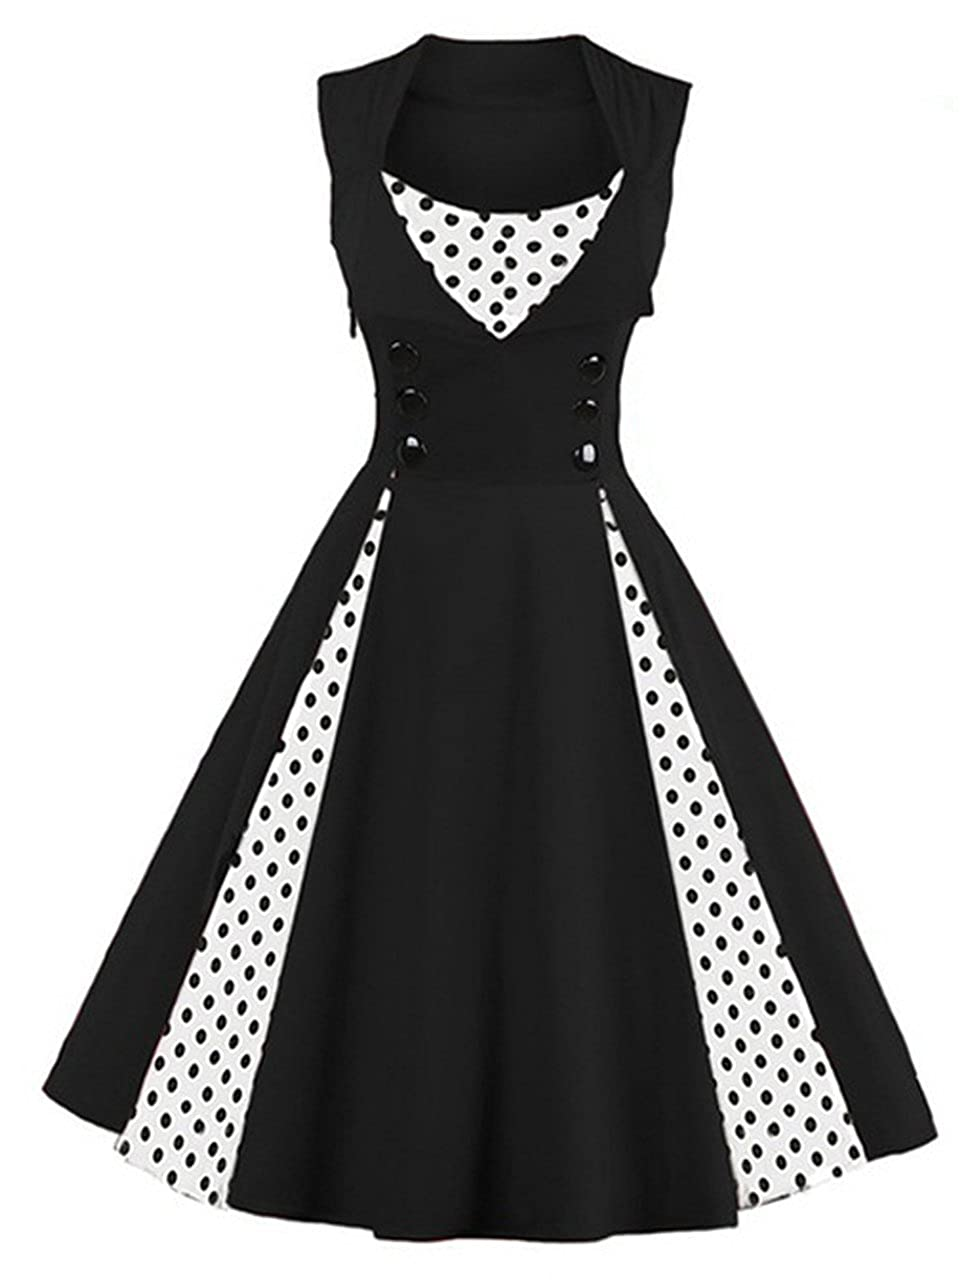 191d8450ae Killreal Women's Polka Dot Retro Vintage Style Cocktail Party Swing Dresses